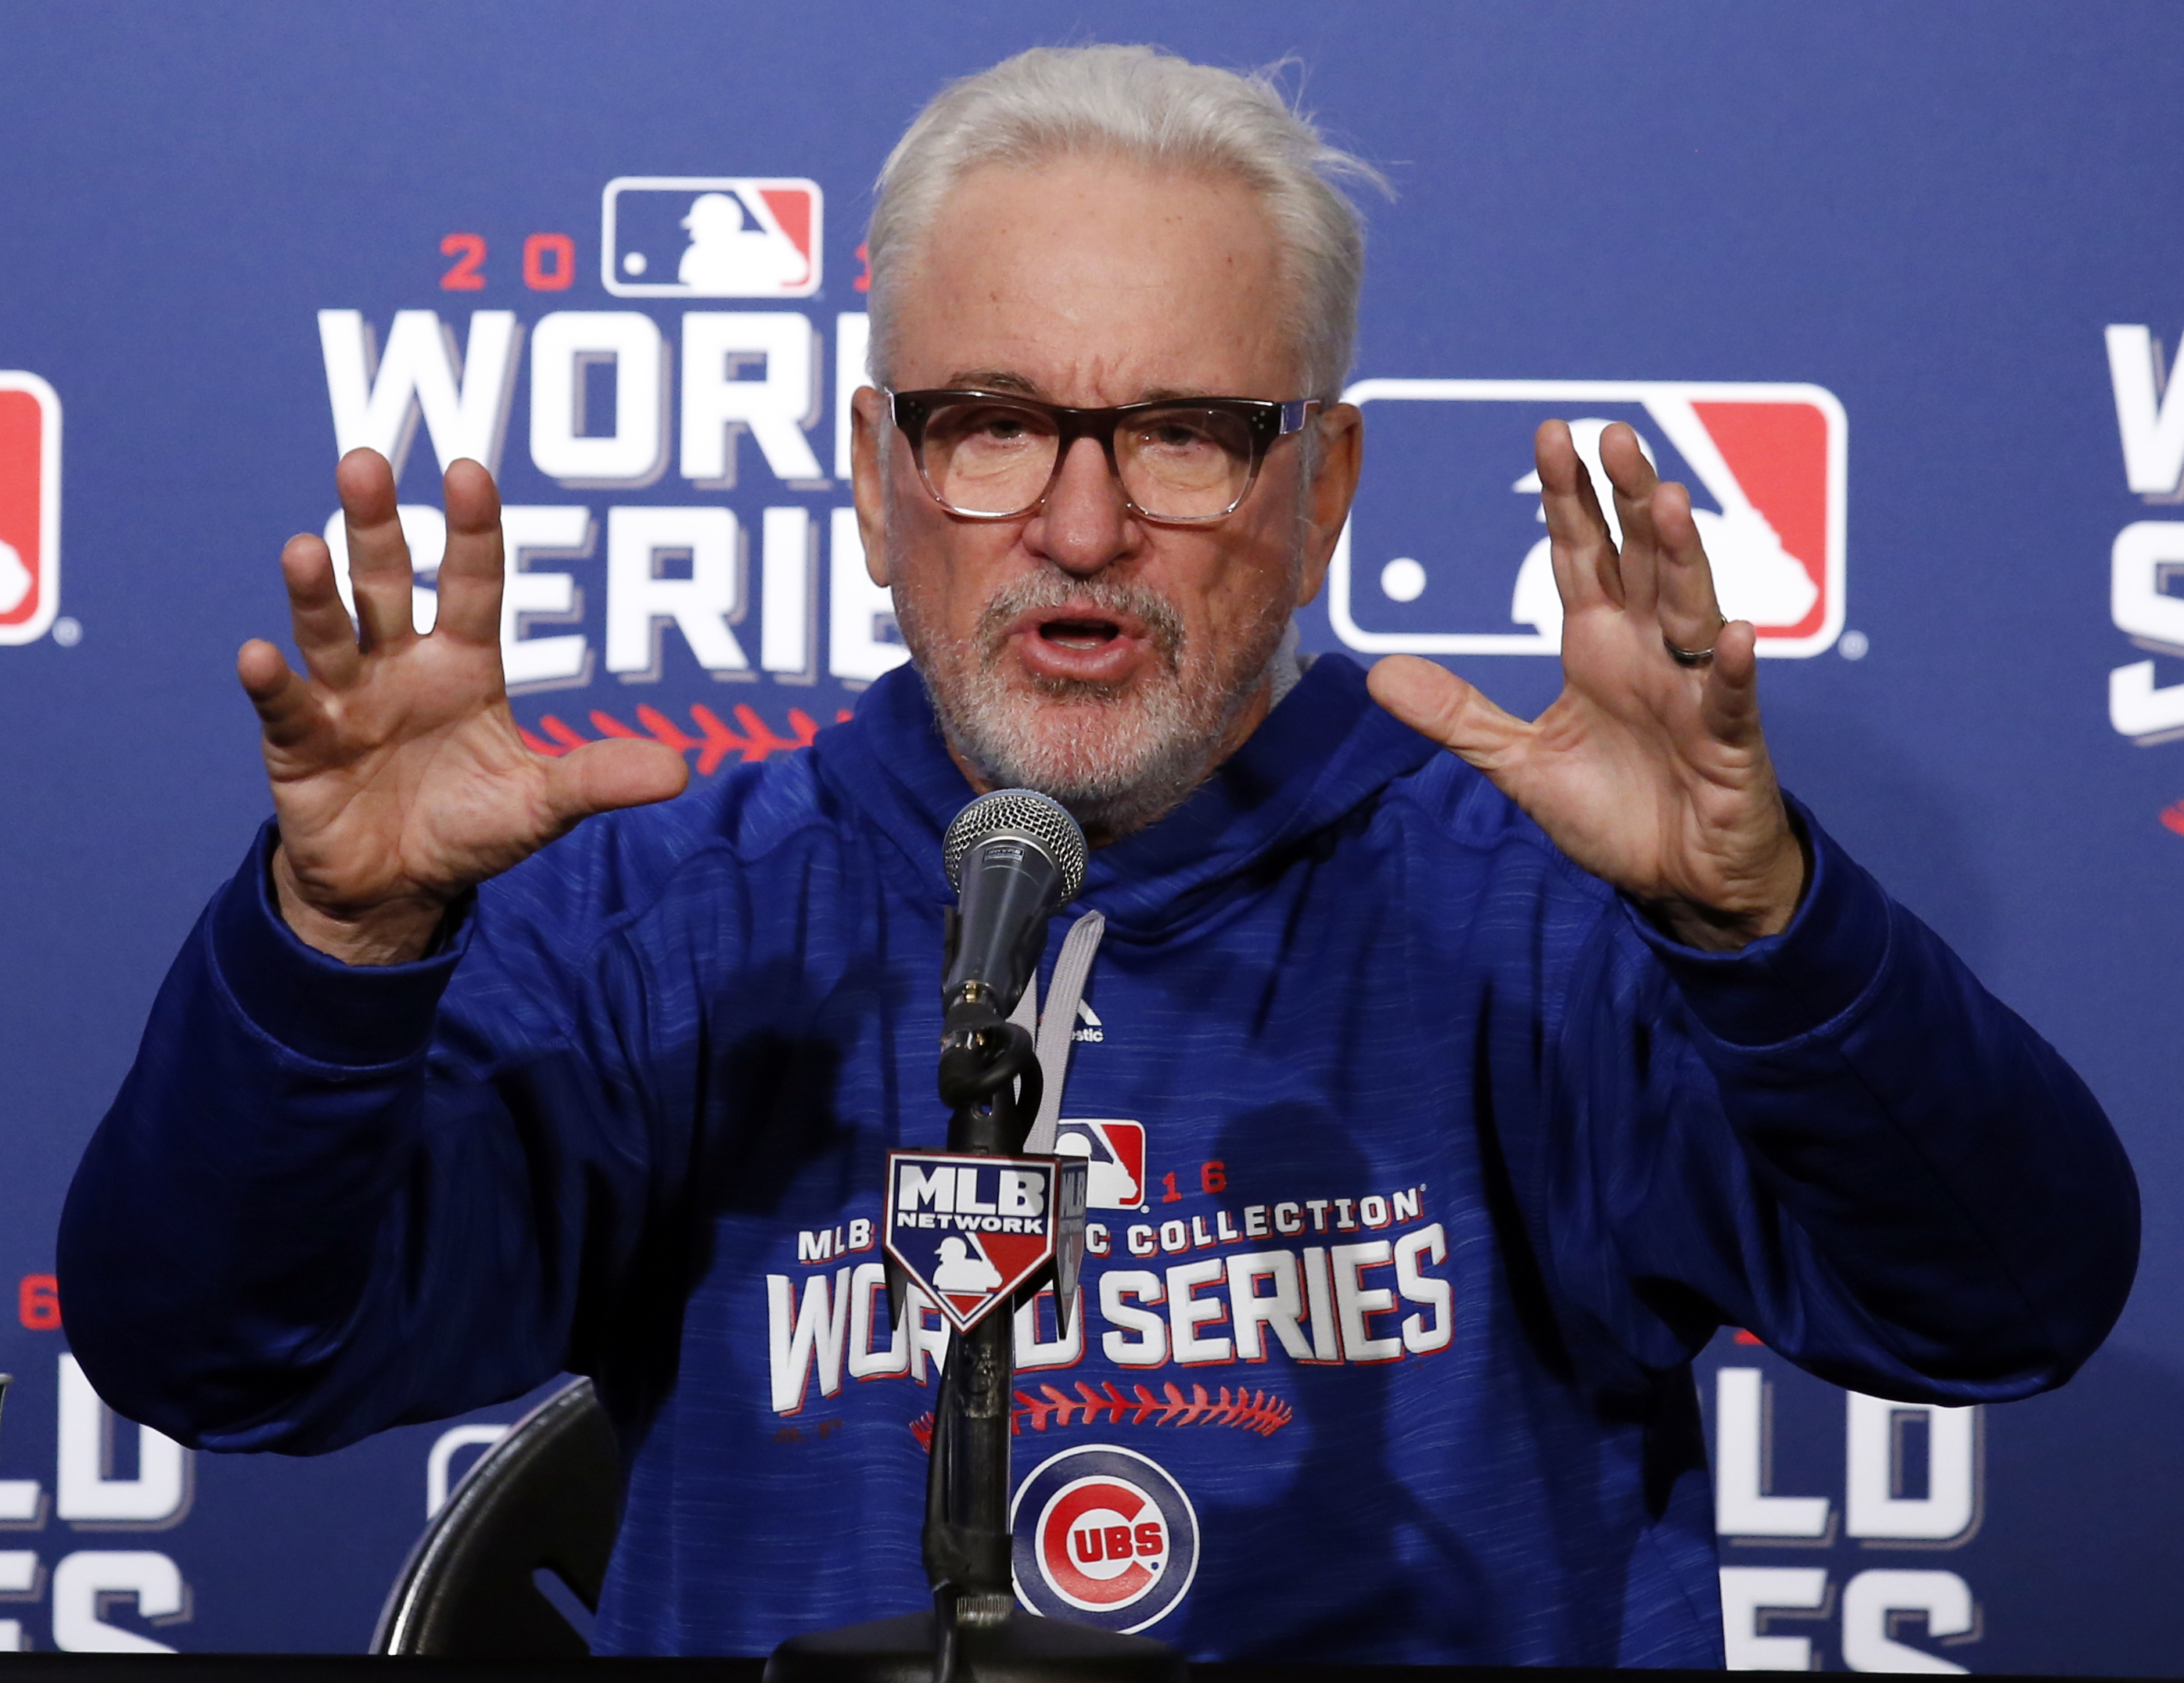 FILE - In this Oct. 27, 2016 file photo, Chicago Cubs manager Joe Maddon answers a question during a news conference before Game 3 of the Major League Baseball World Series against the Cleveland Indians in Chicago. Maddon has kept it positive for his team